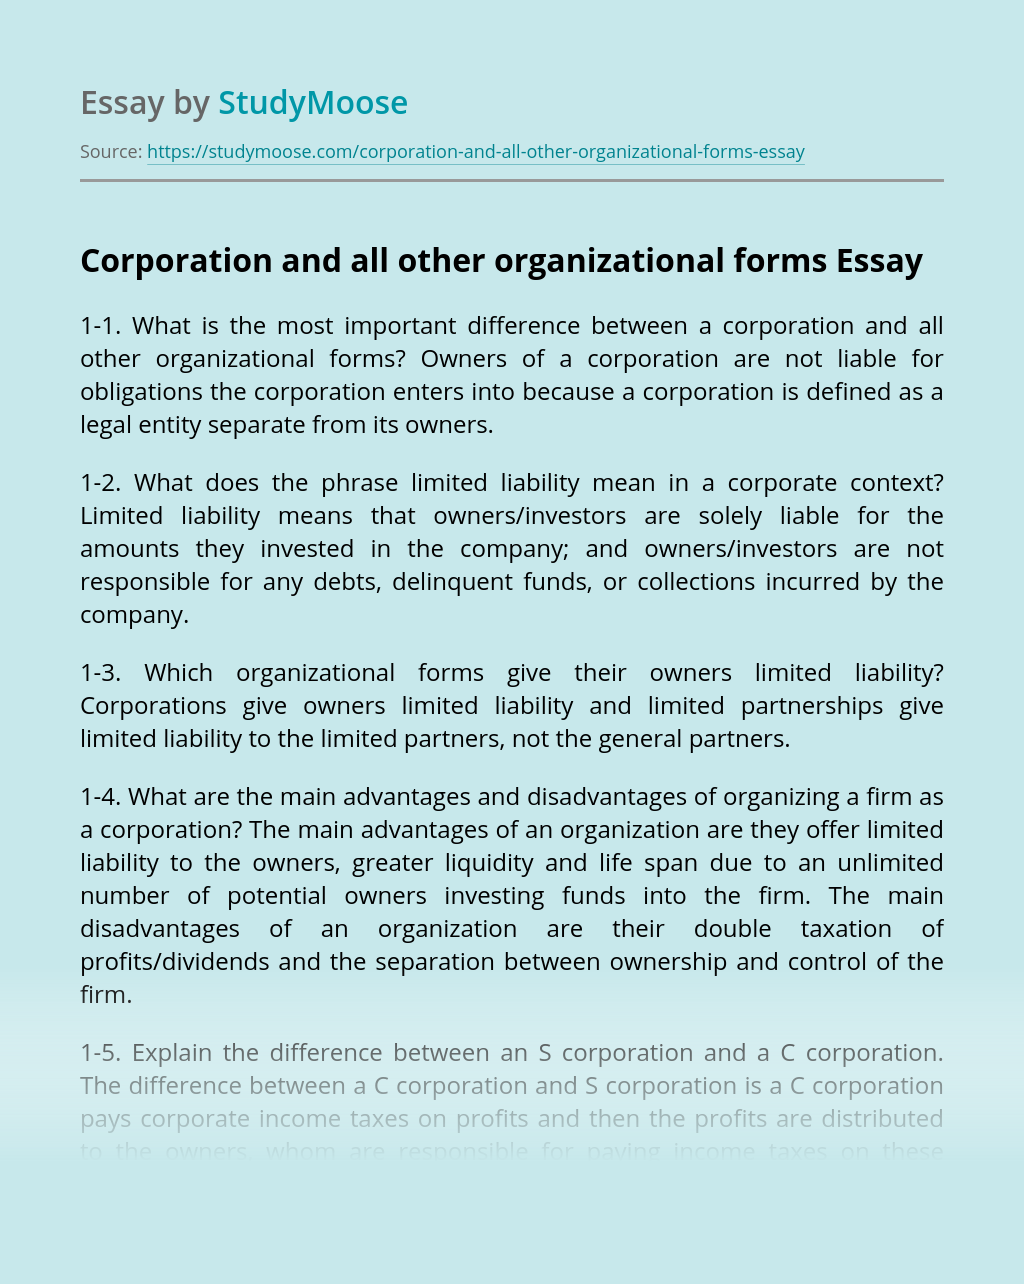 Corporation and all other organizational forms